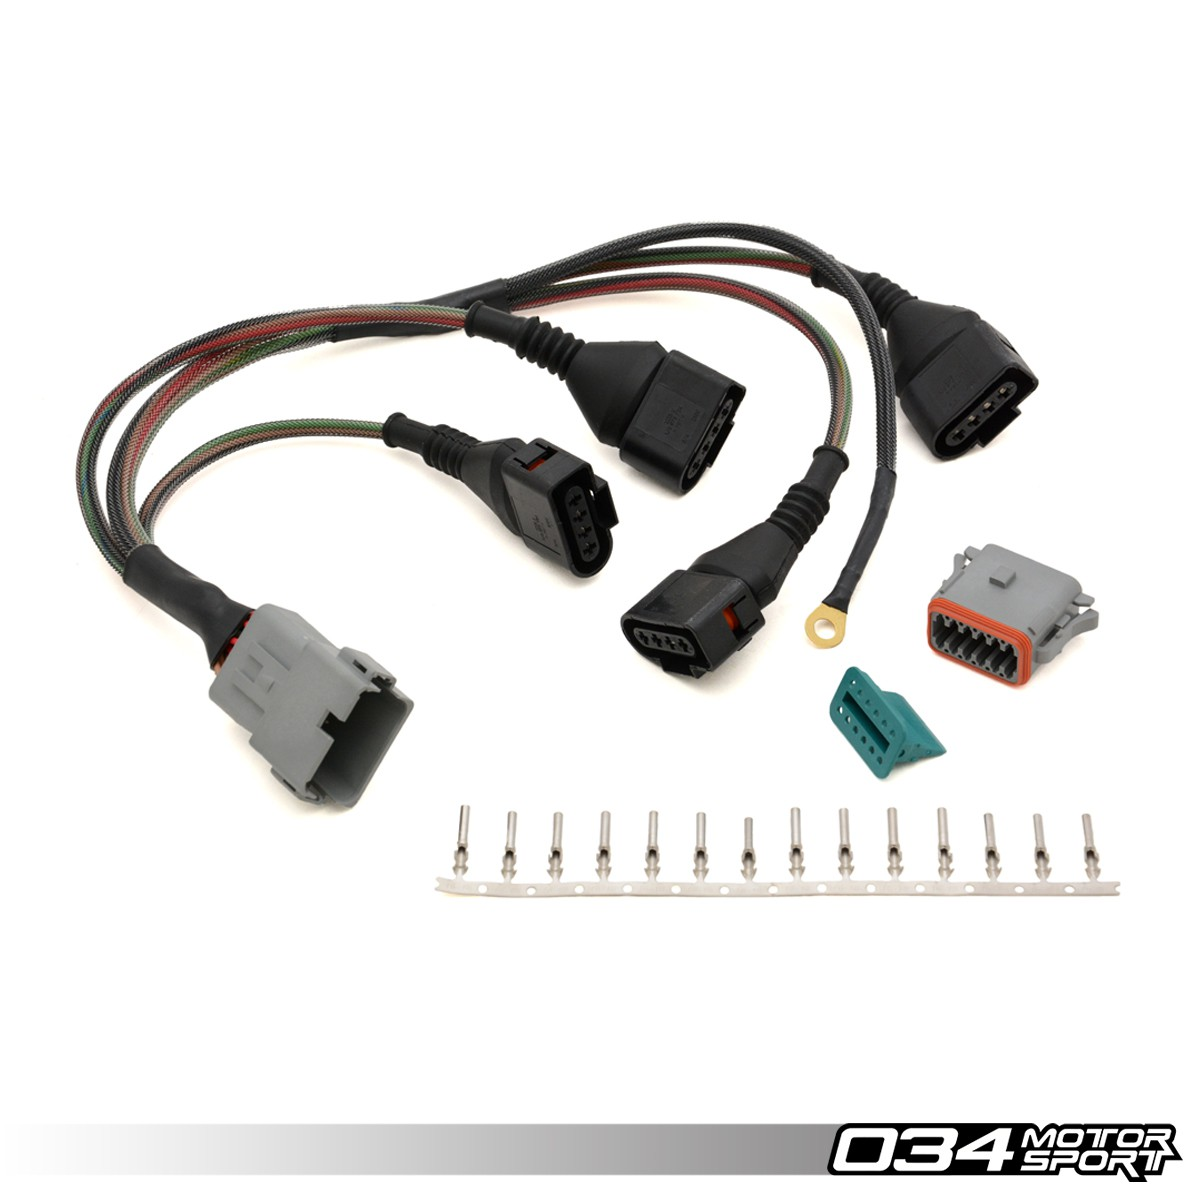 repair update harness audi volkswagen 18t with 4 wire coils 034motorsport 034 701 0004 2 repair update harness, audi volkswagen 1 8t with 4 wire coils Audi Ignition Coil Problem at love-stories.co